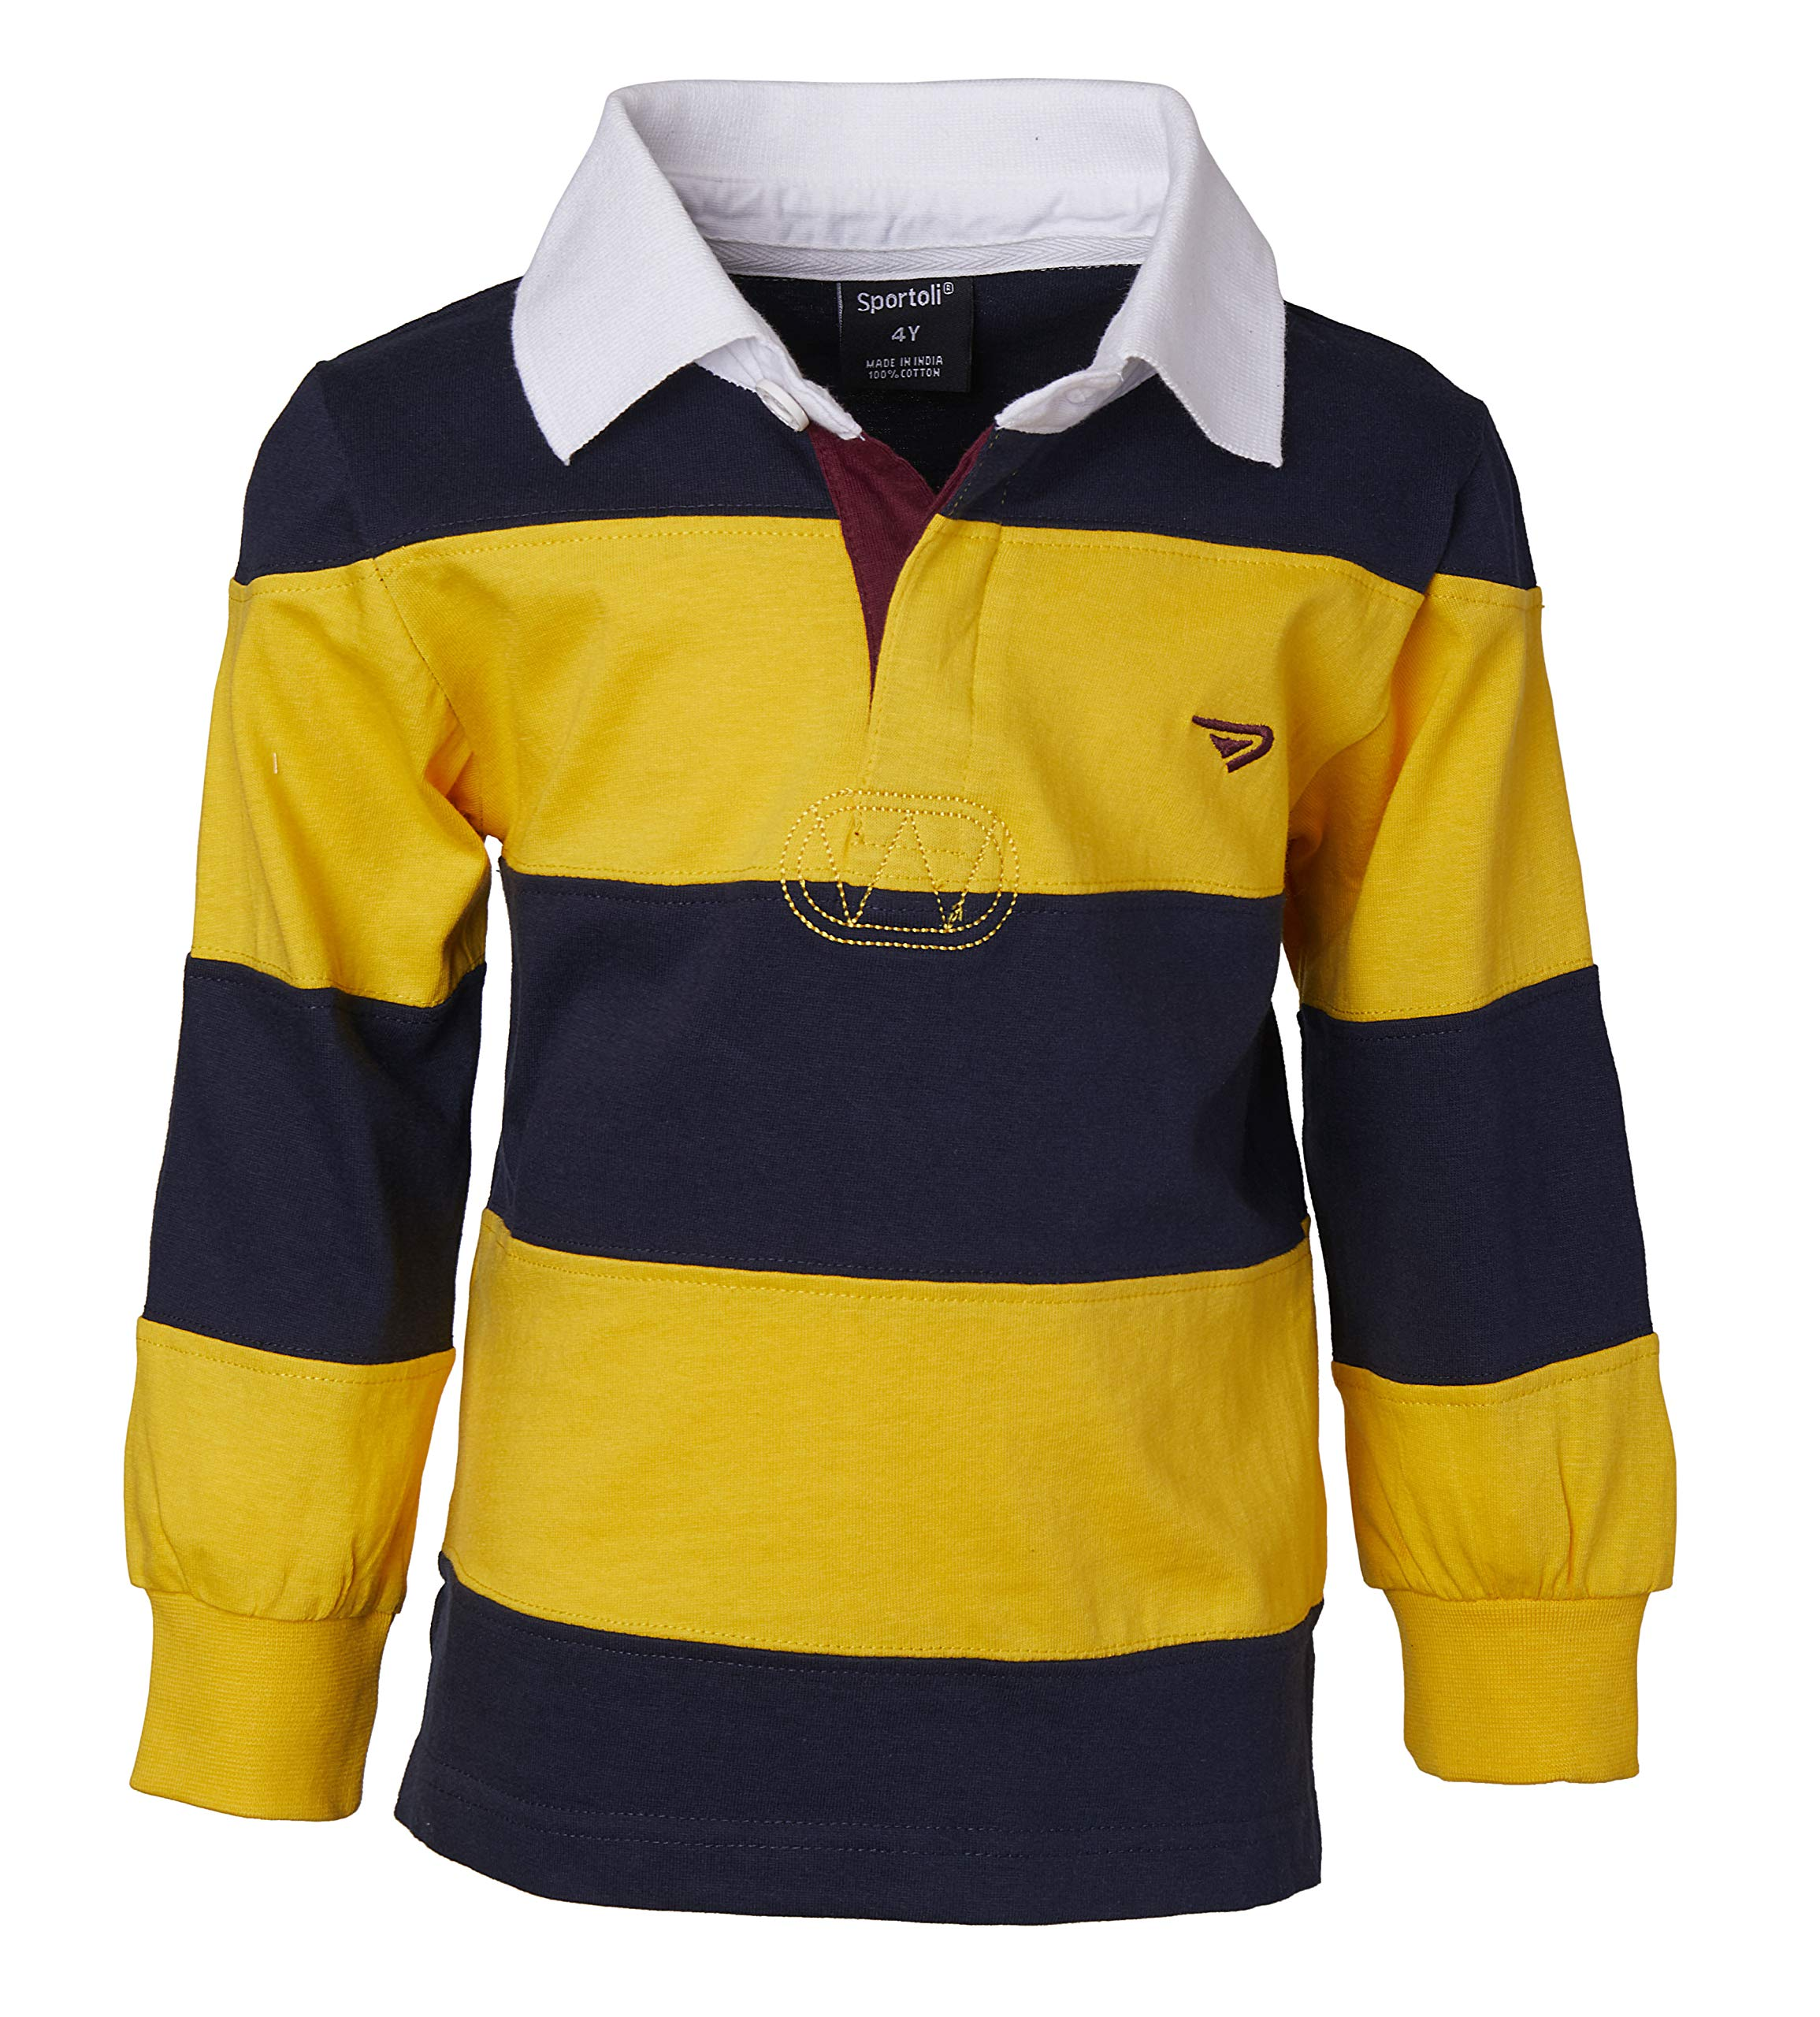 Sportoli Little Boys 100% Cotton Wide Striped Long Sleeve Polo Rugby Shirt - Gold (Size 3)